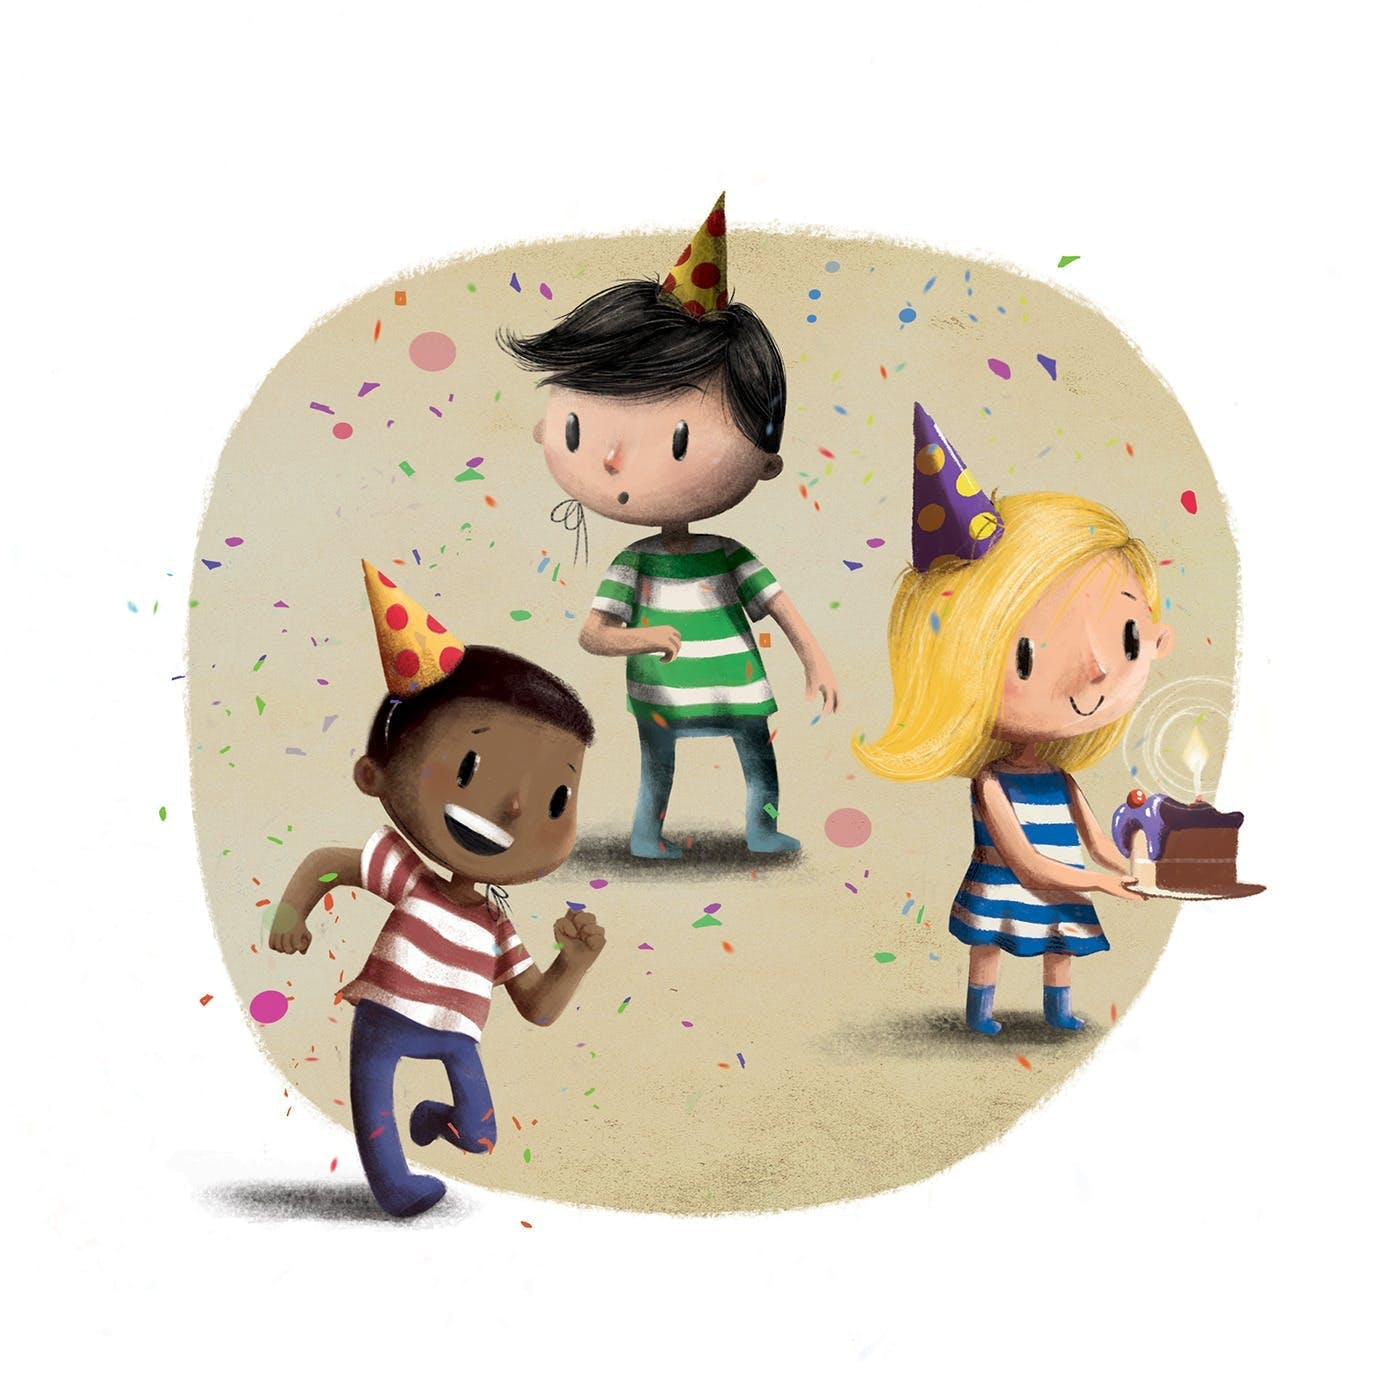 The Birthday Thief Book - Product Description about the range of different diverse character you can select to represent the child you are gifting for